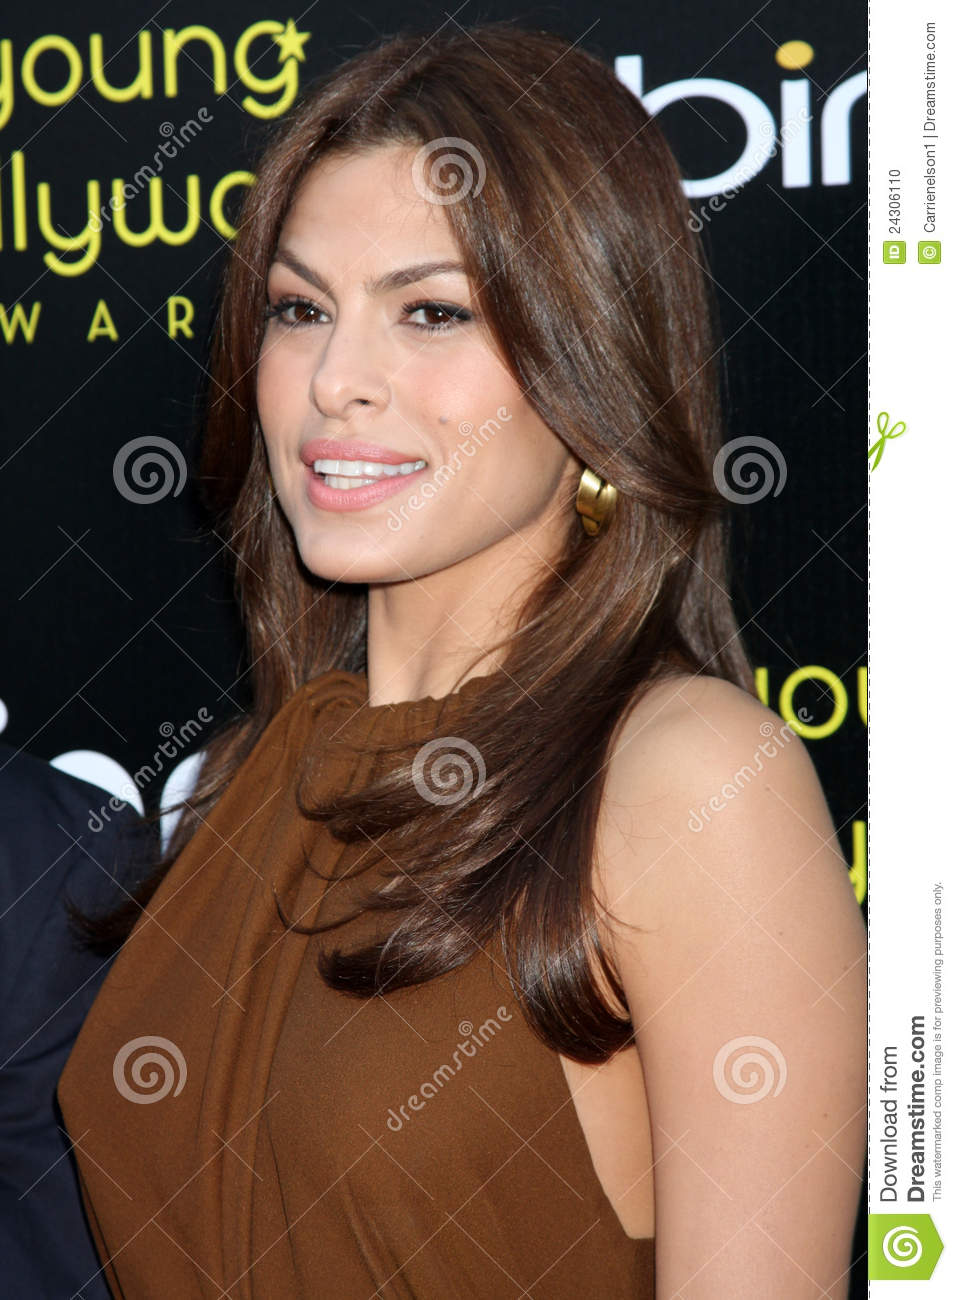 Eva mendez young pictures very